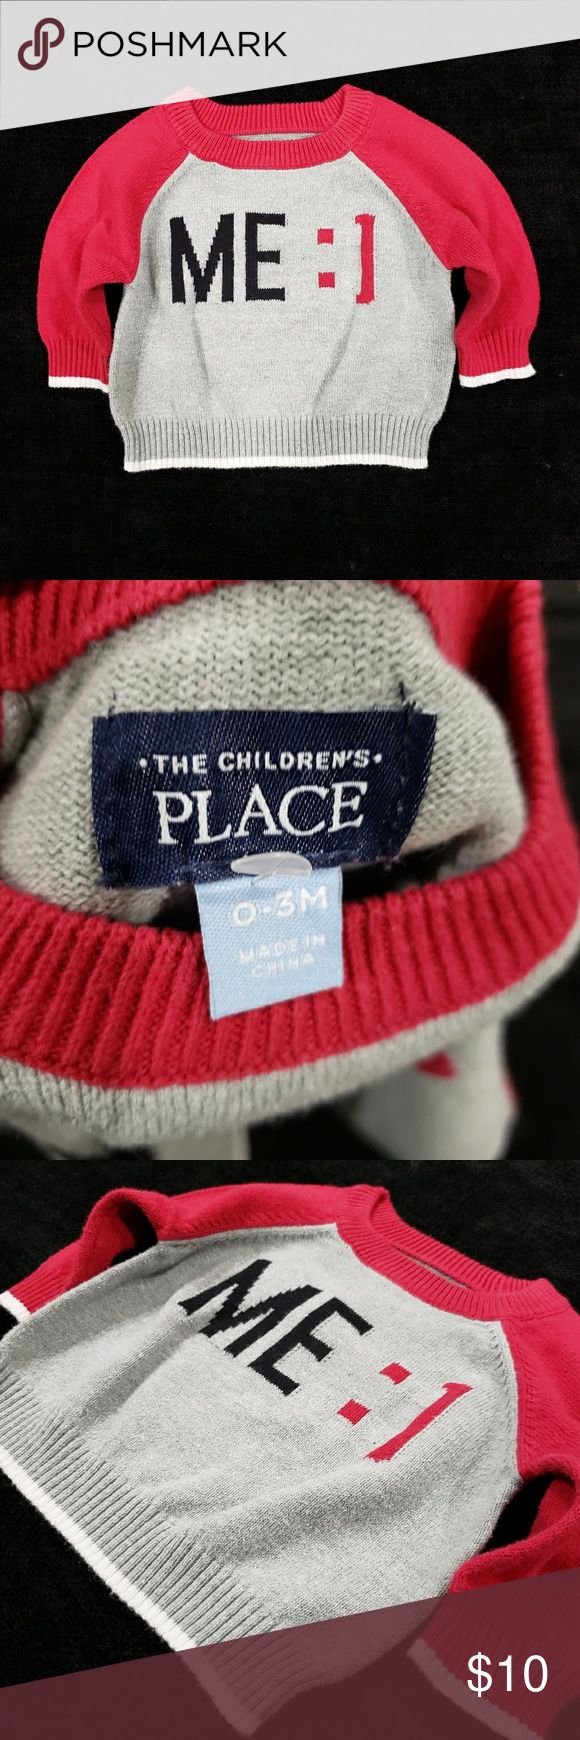 O/3M Boys Baby Children's Place Sweater ☆Excellent